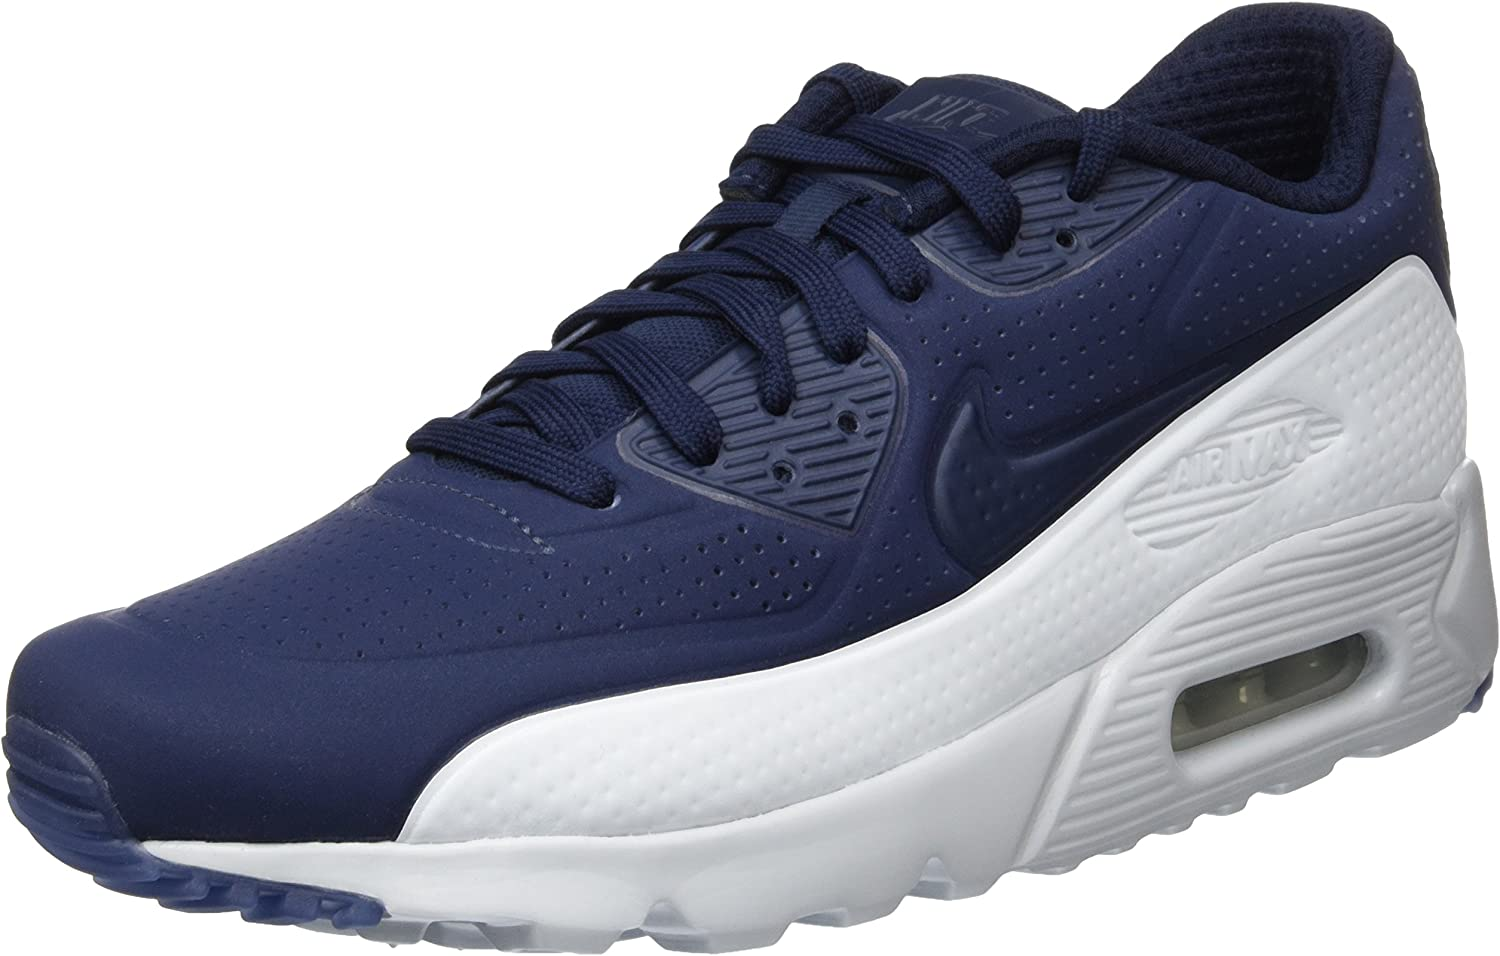 Trivial pastel instante  Nike Air Max 90 Ultra Moire, Men's Running Shoes, Blue  (Obsidian/Obsidian-Pr Platinum), 6 UK (40 EU): Amazon.co.uk: Shoes & Bags